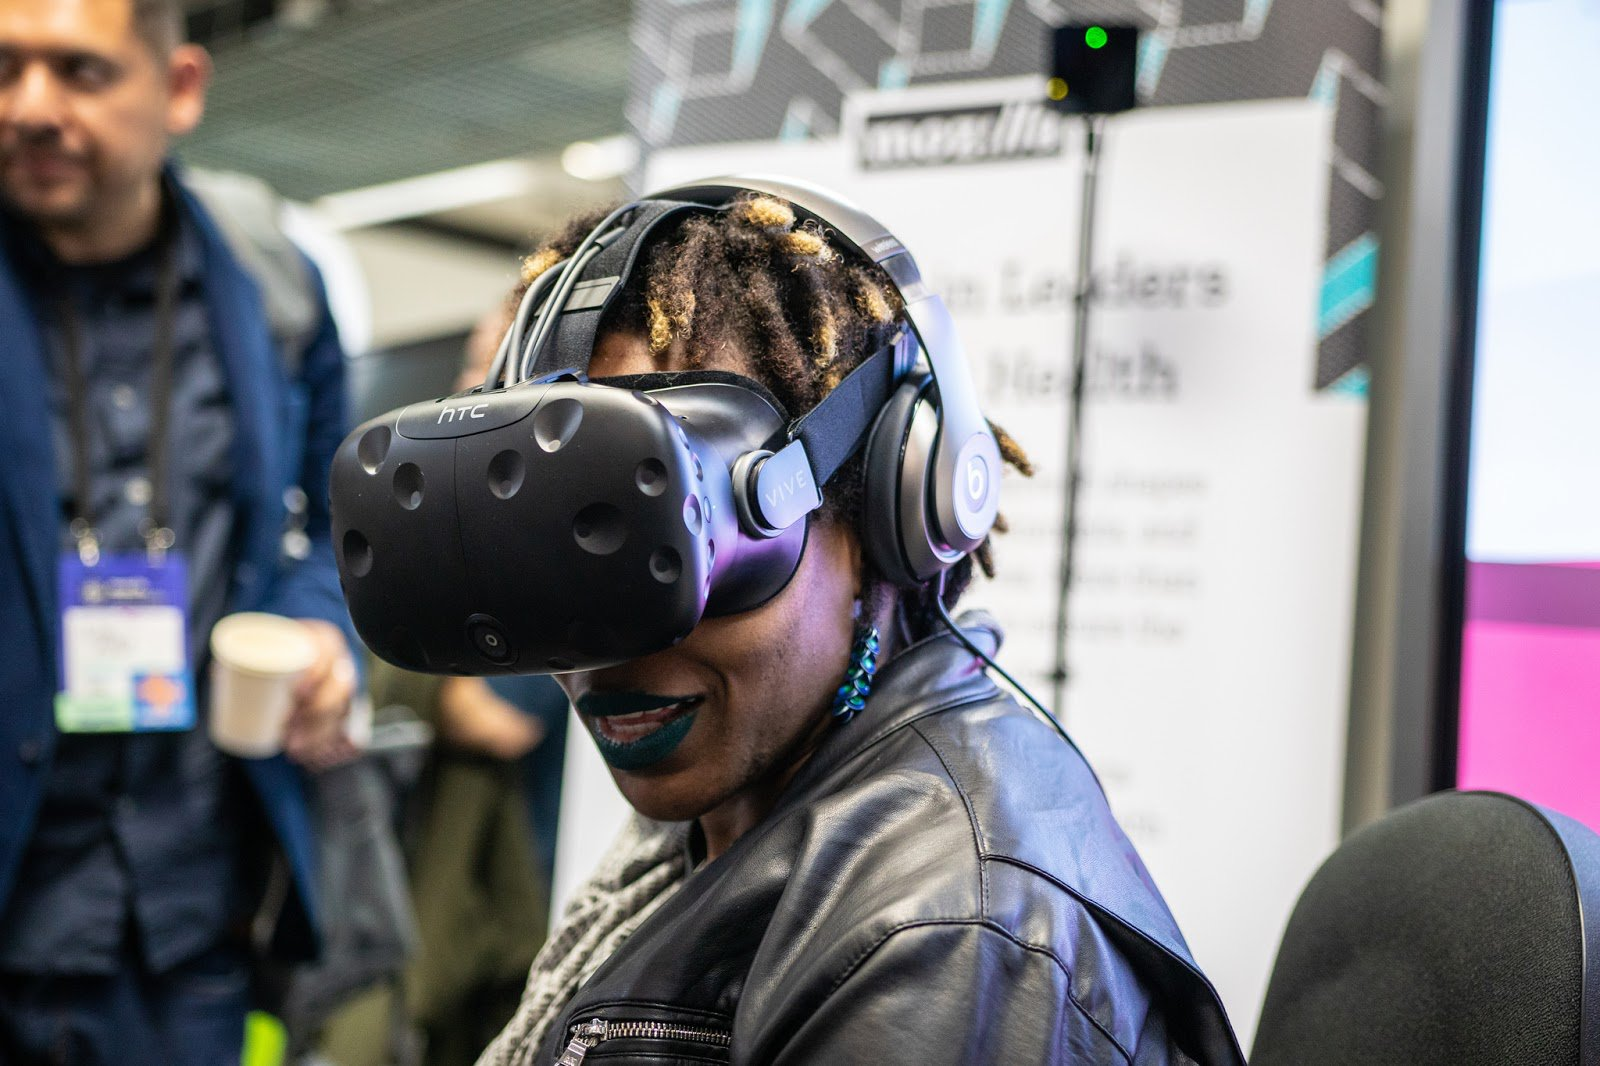 a participant trying out a VR headset